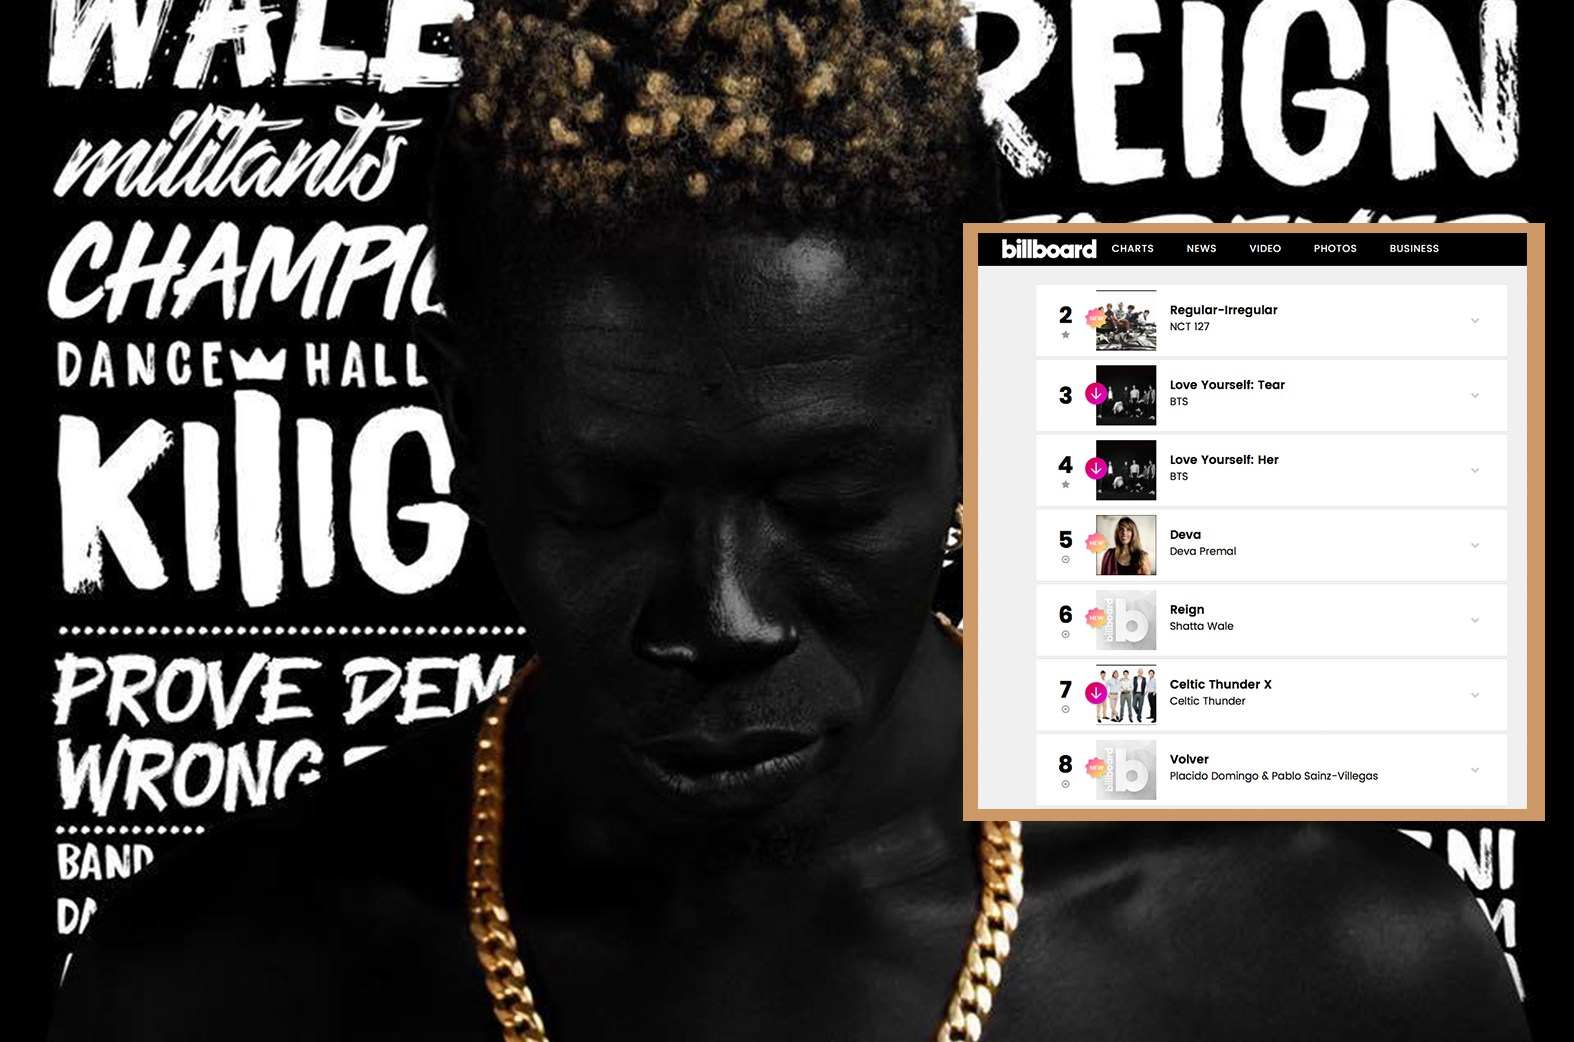 Shatta Wale's Reign Album gets listed on Billboard charts